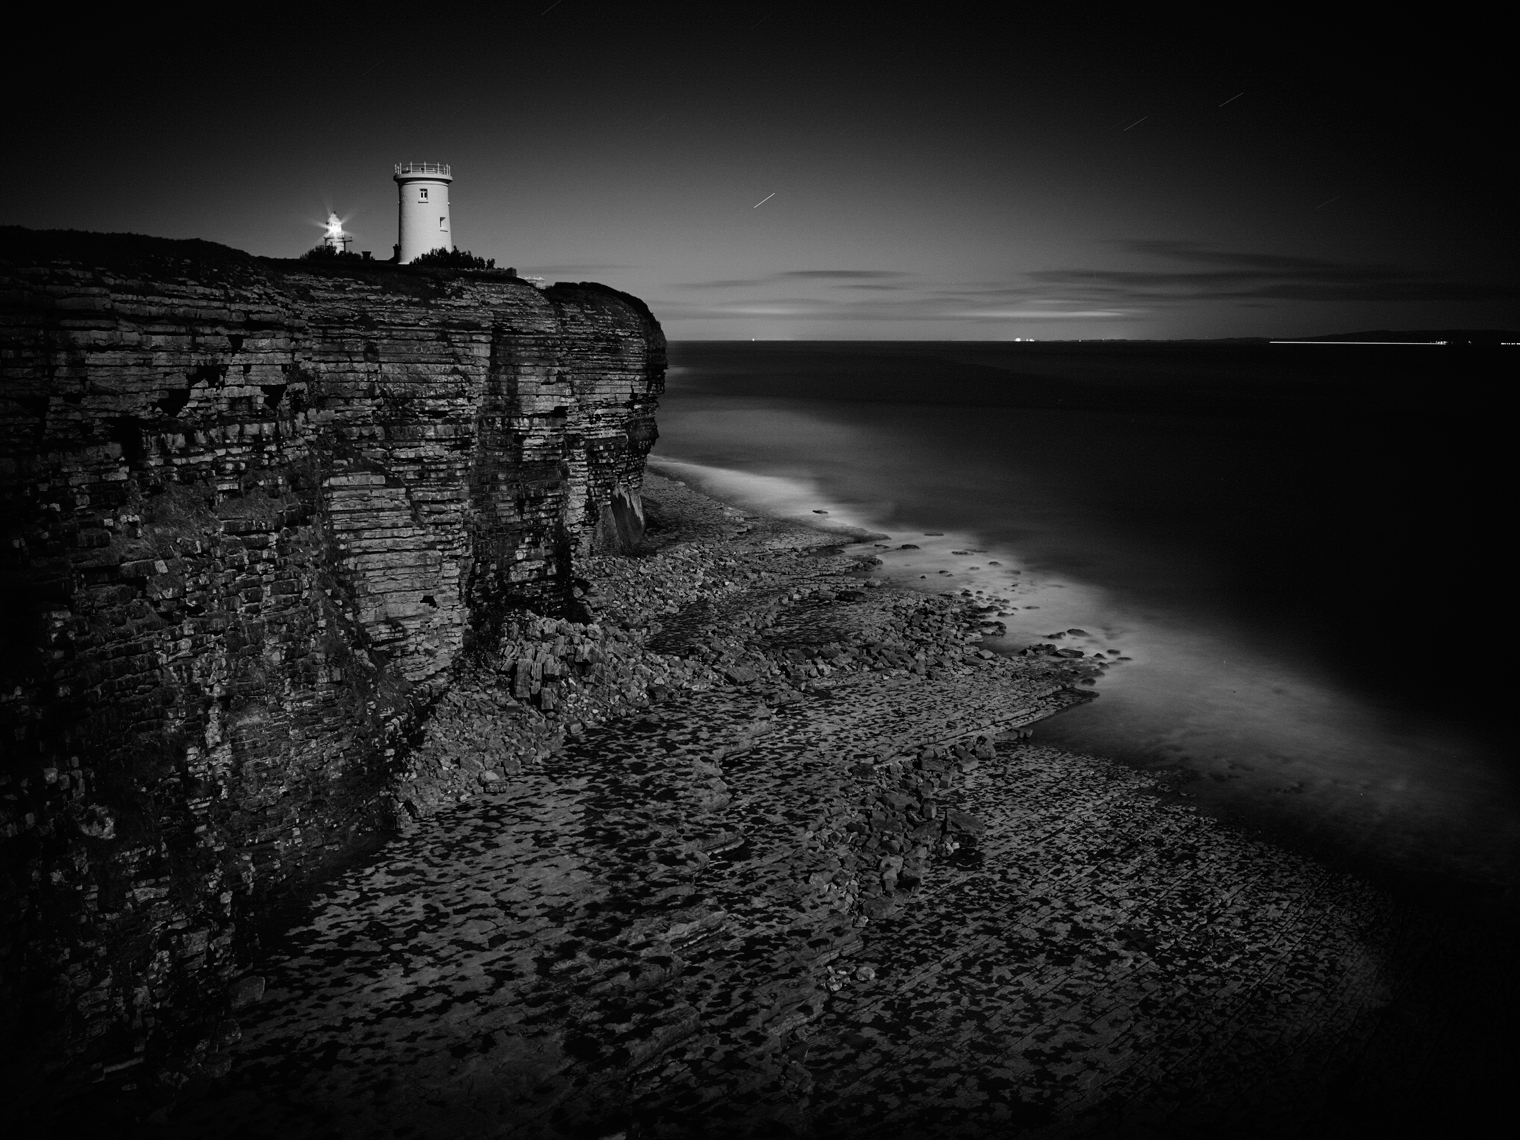 Jon Wyatt Photography - Nash Point cliffs and lighthouse in South Wales